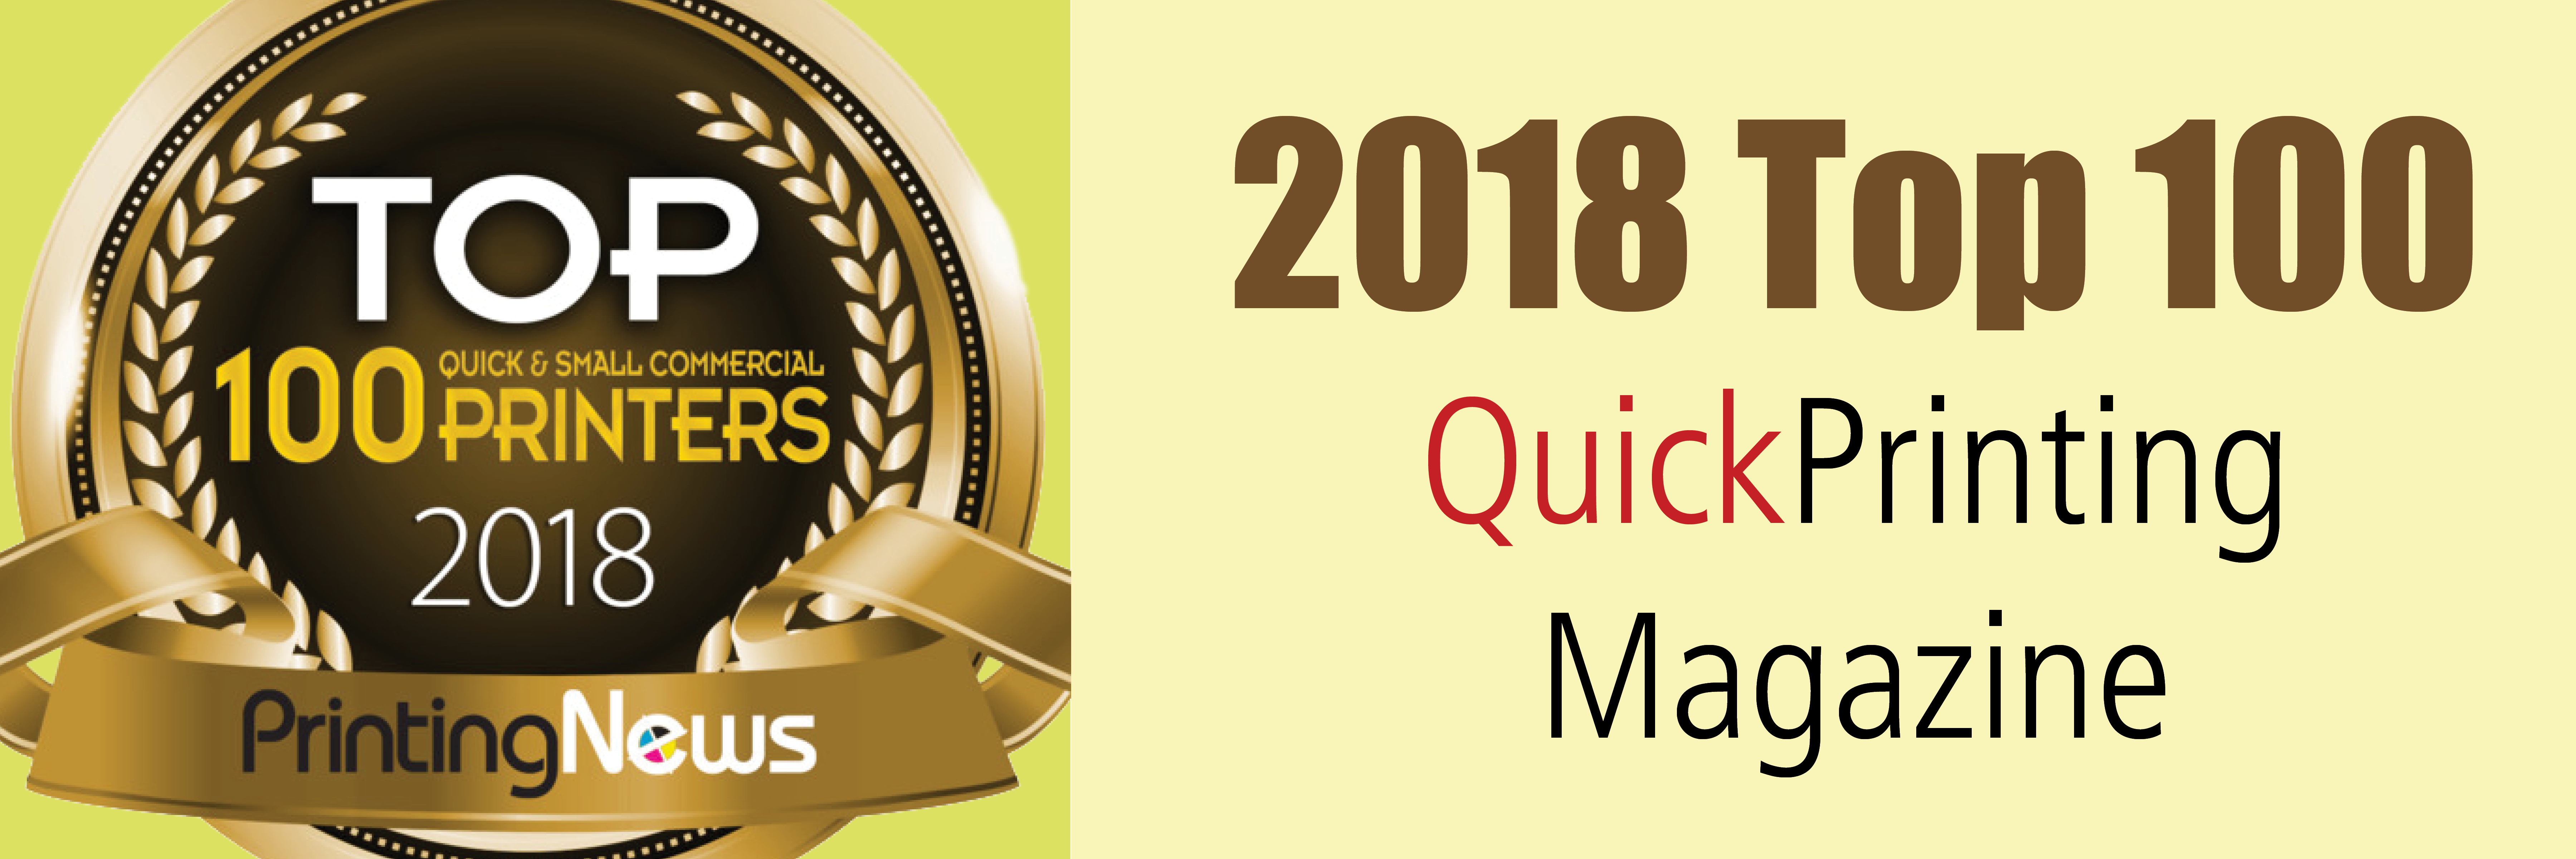 2018 Top 100 QuickPrinting Magazine